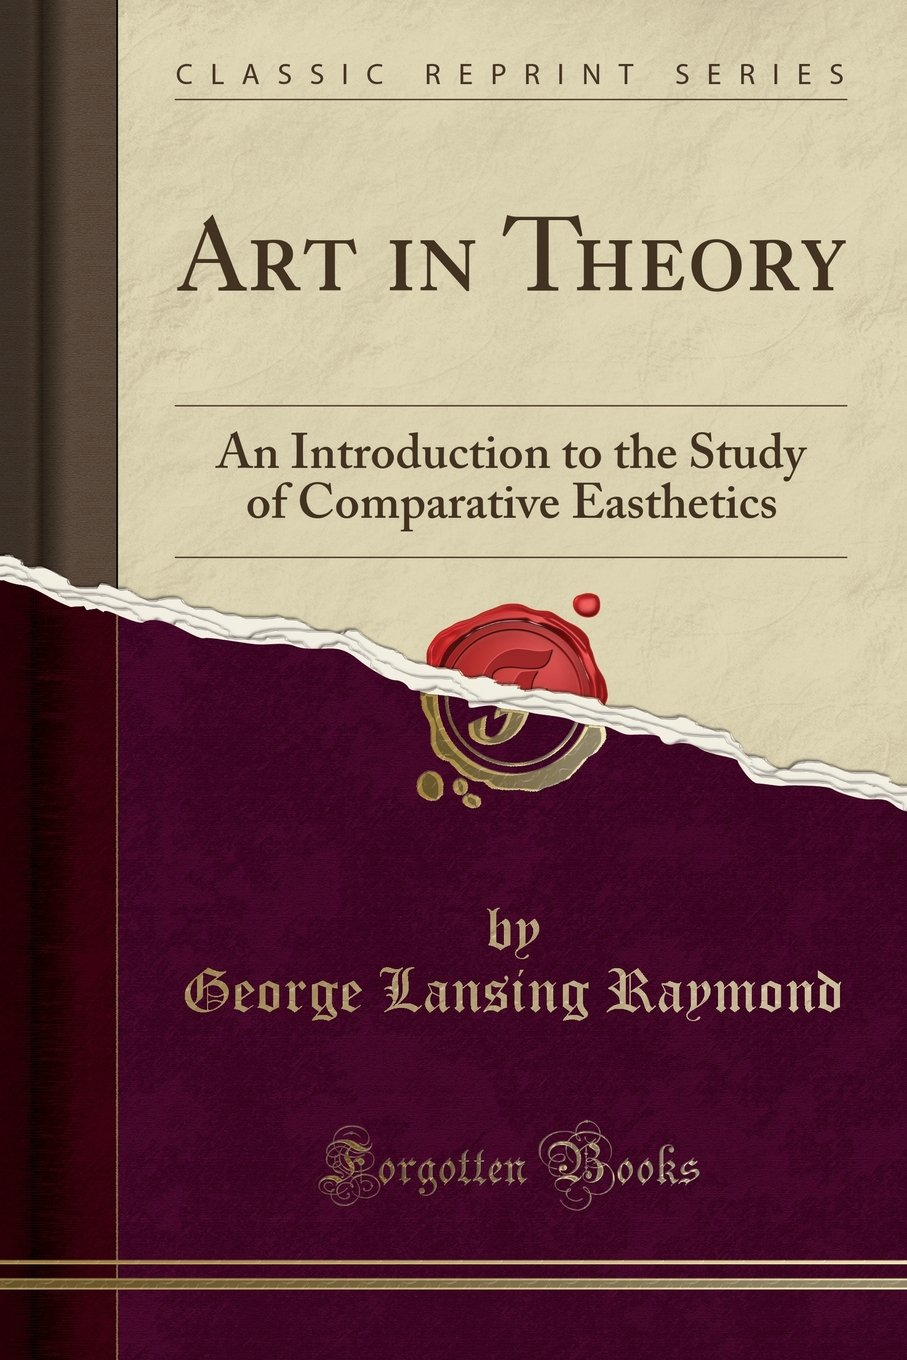 Download Art in Theory: An Introduction to the Study of Comparative Easthetics (Classic Reprint) ebook